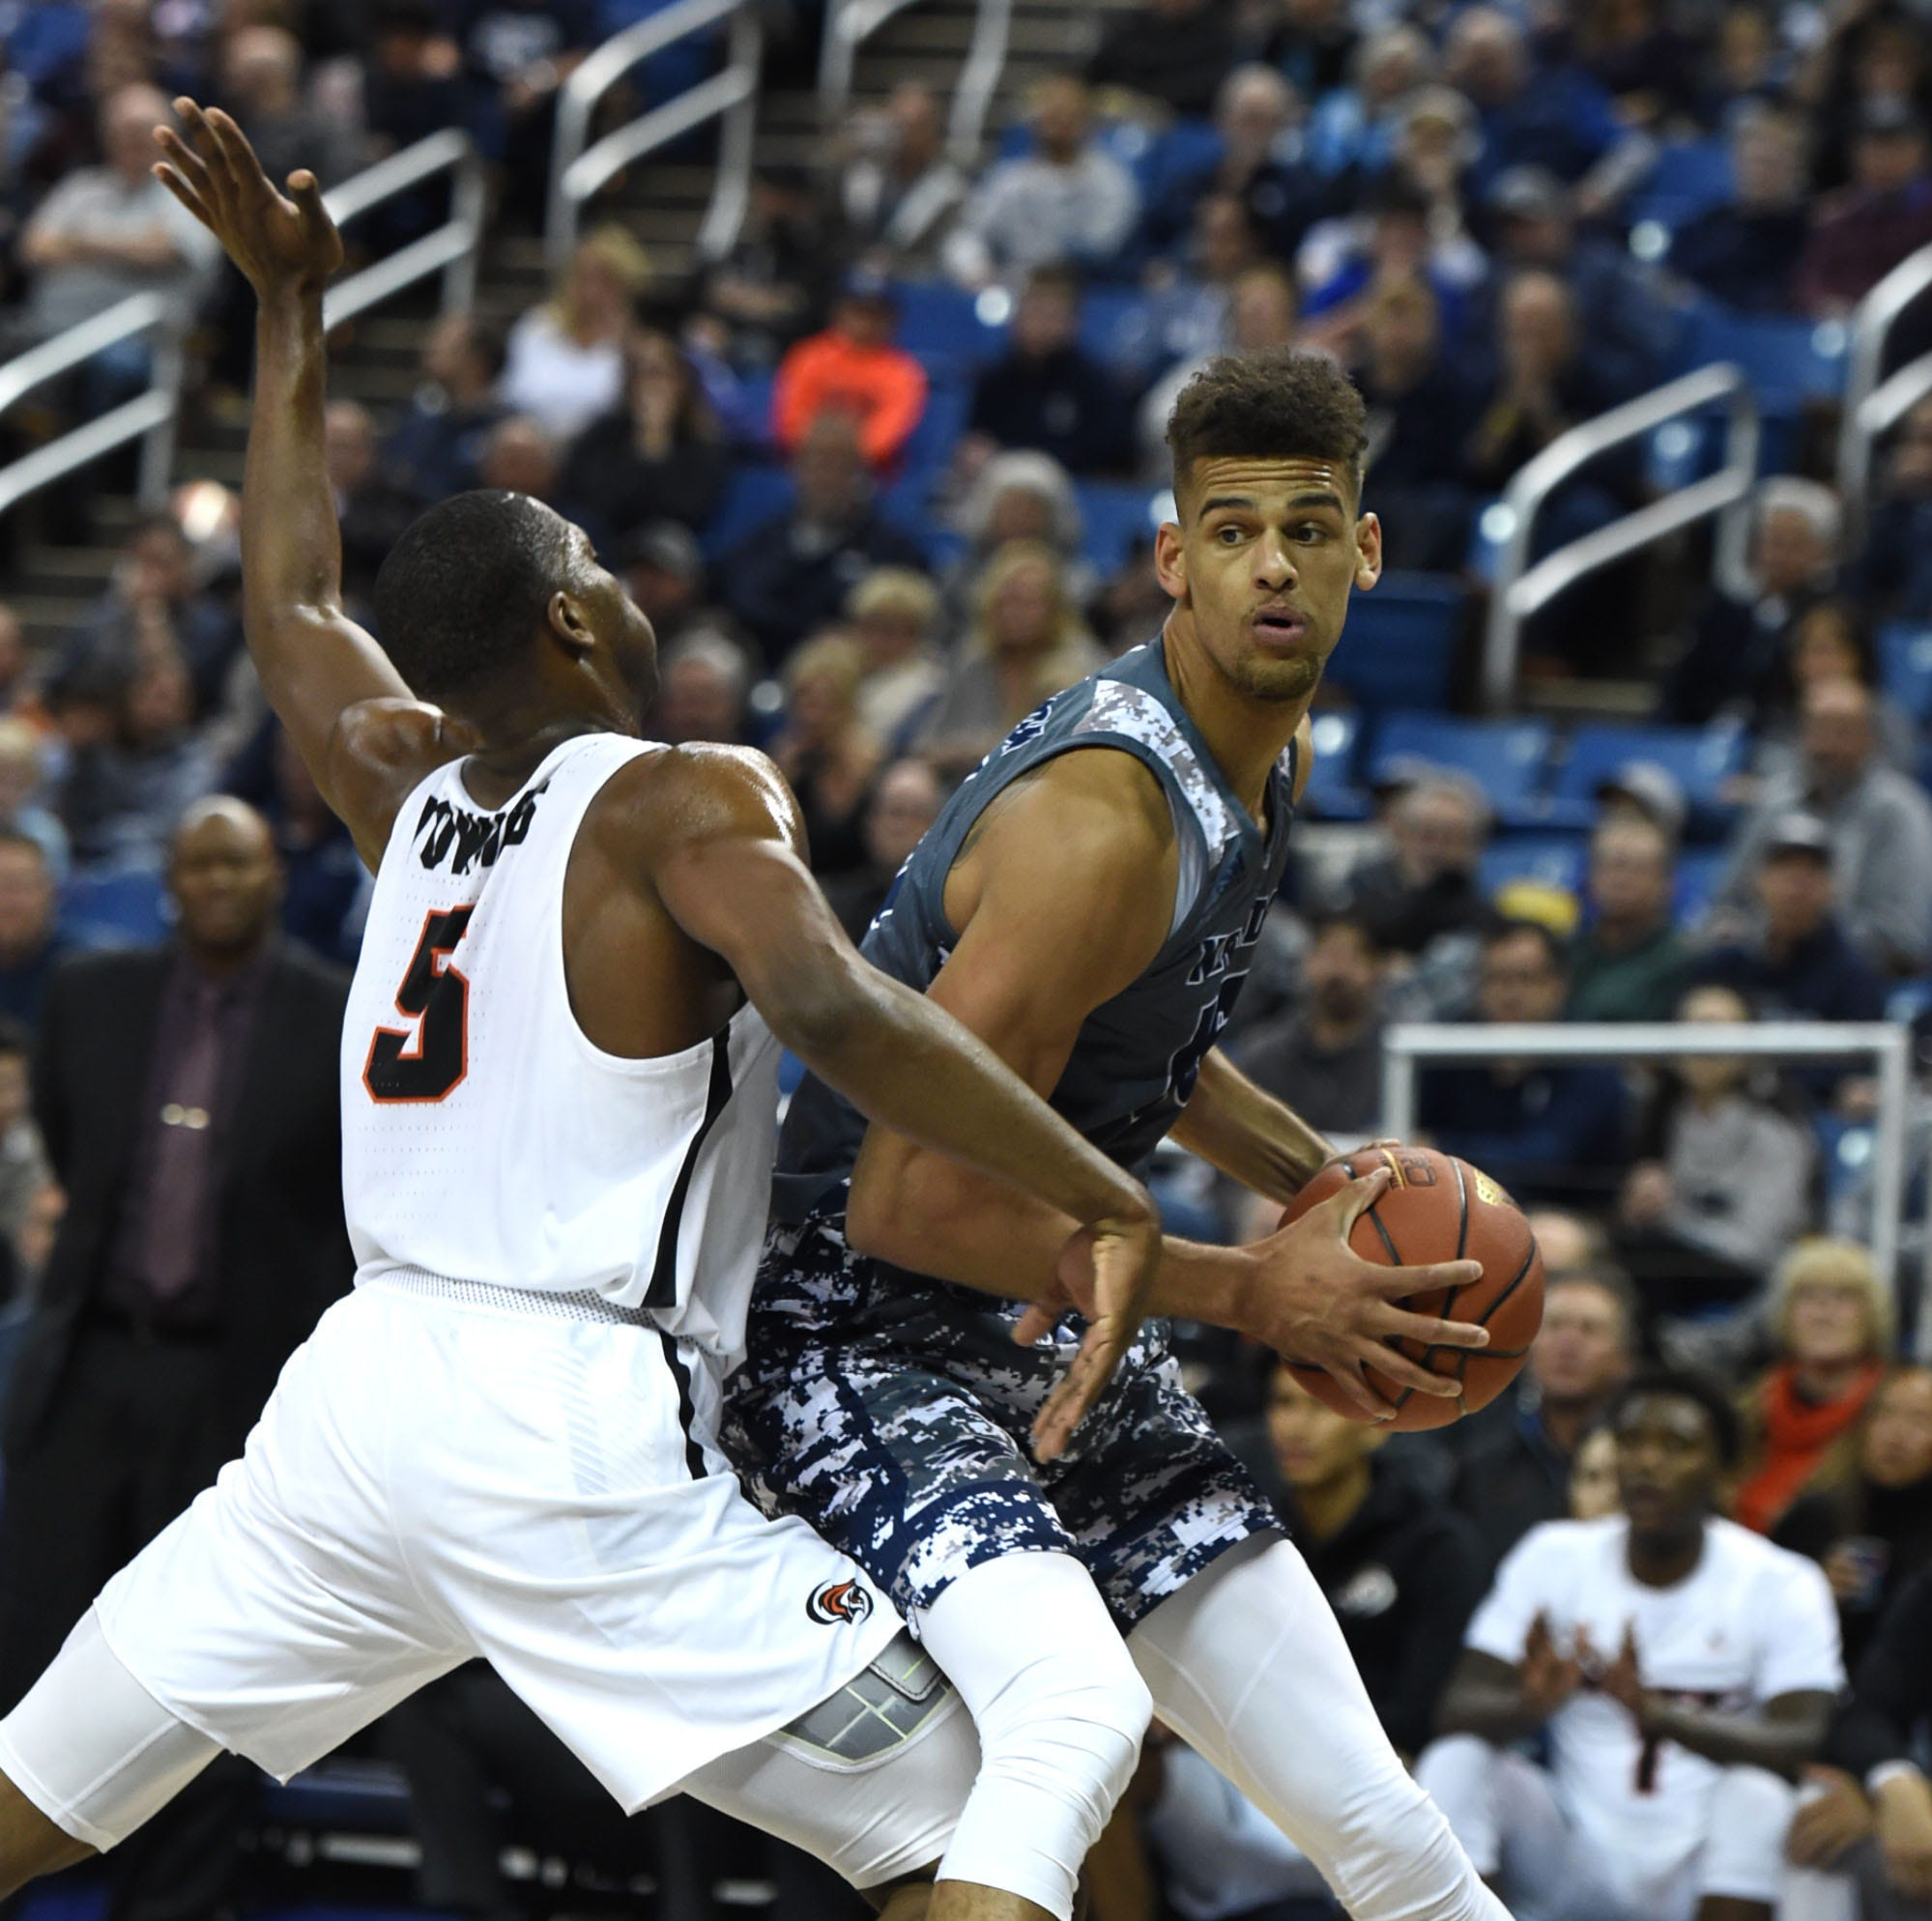 On the move: Nevada Wolf Pack basketball lands best-ever No. 6 ranking in AP Top 25